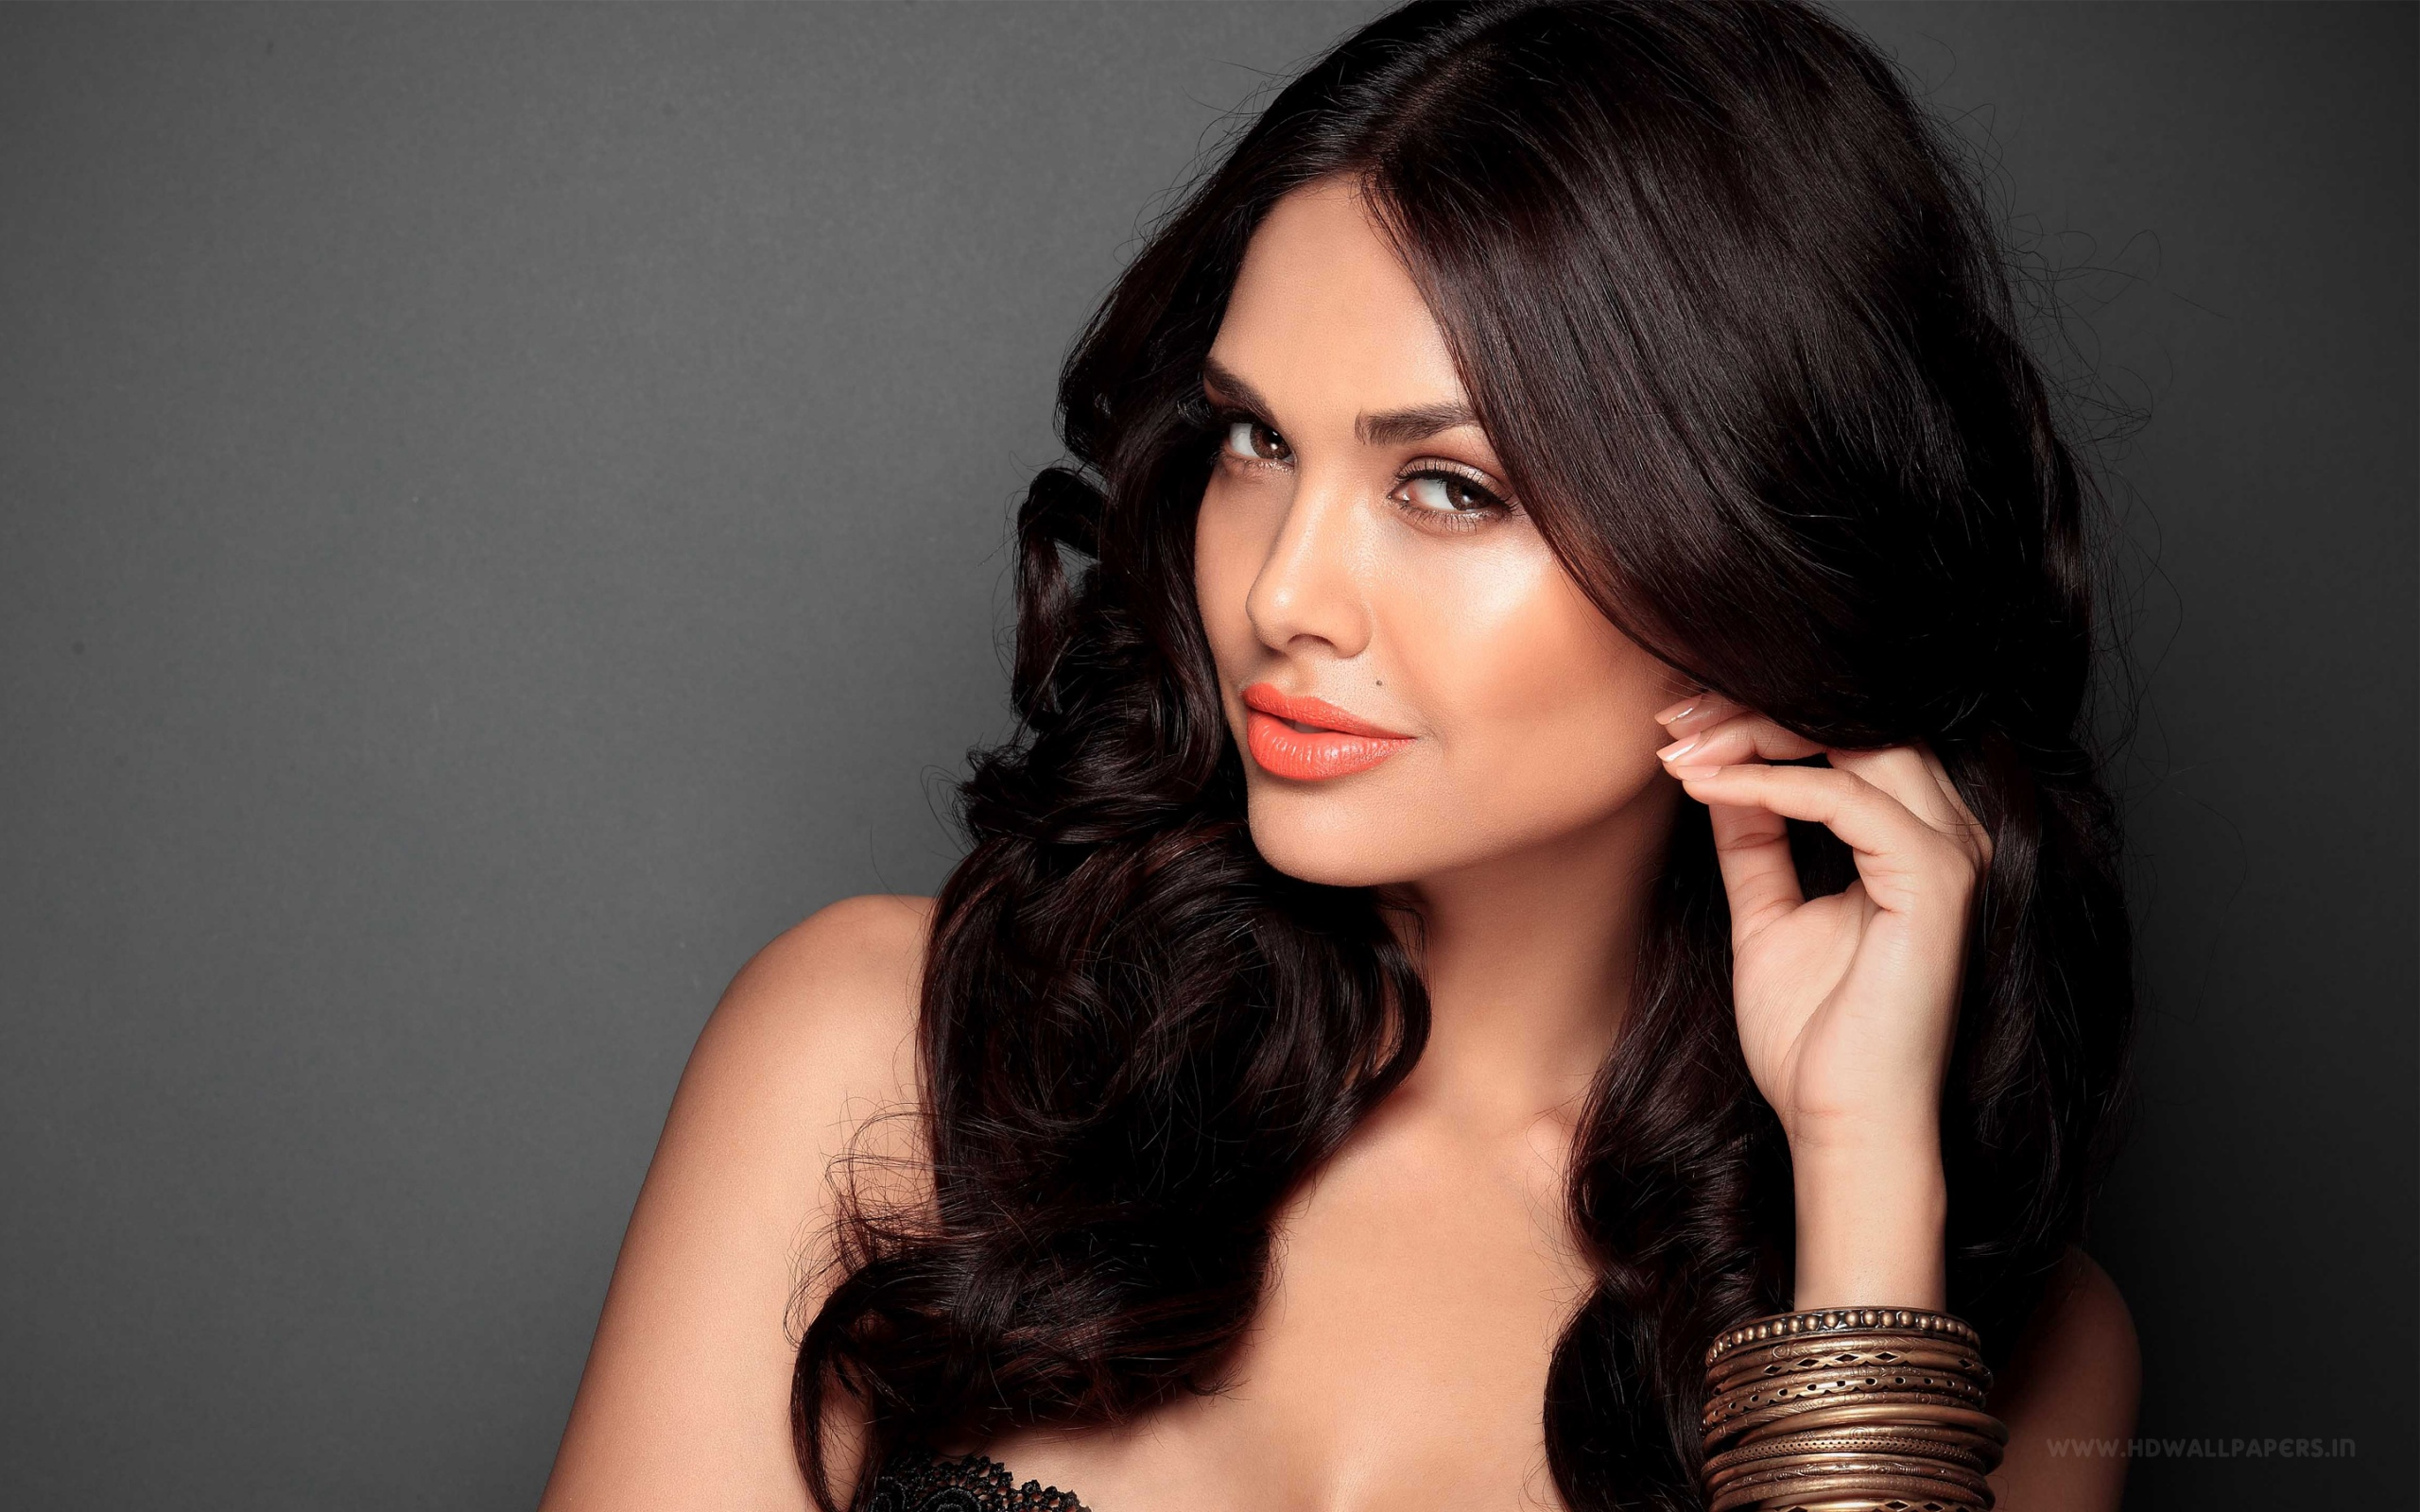 Wallpapers Actress Bollywood Group